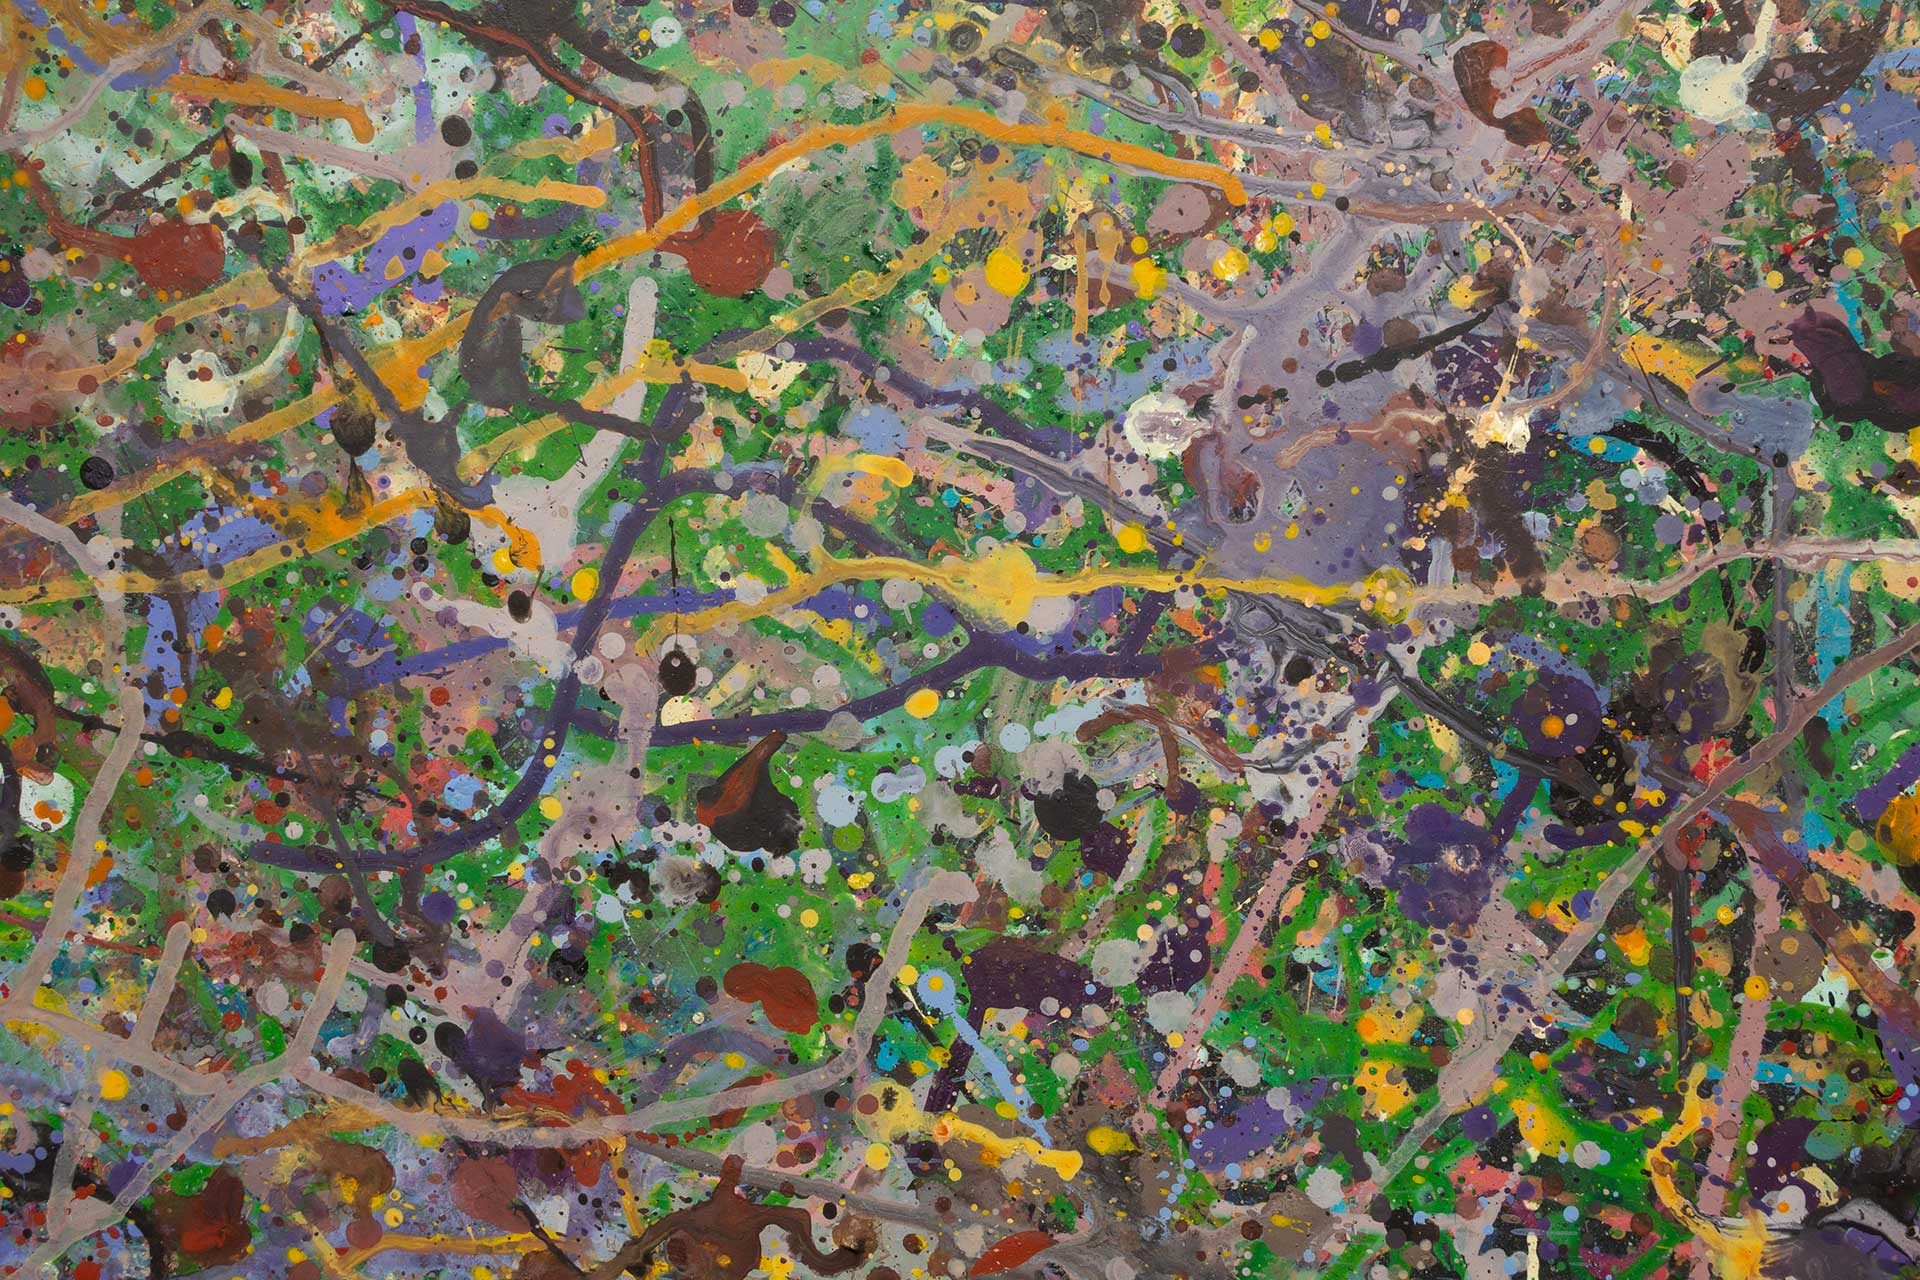 Abstract expressionism painting - Field of flowers - Yarra Glen #1 - Detail 2